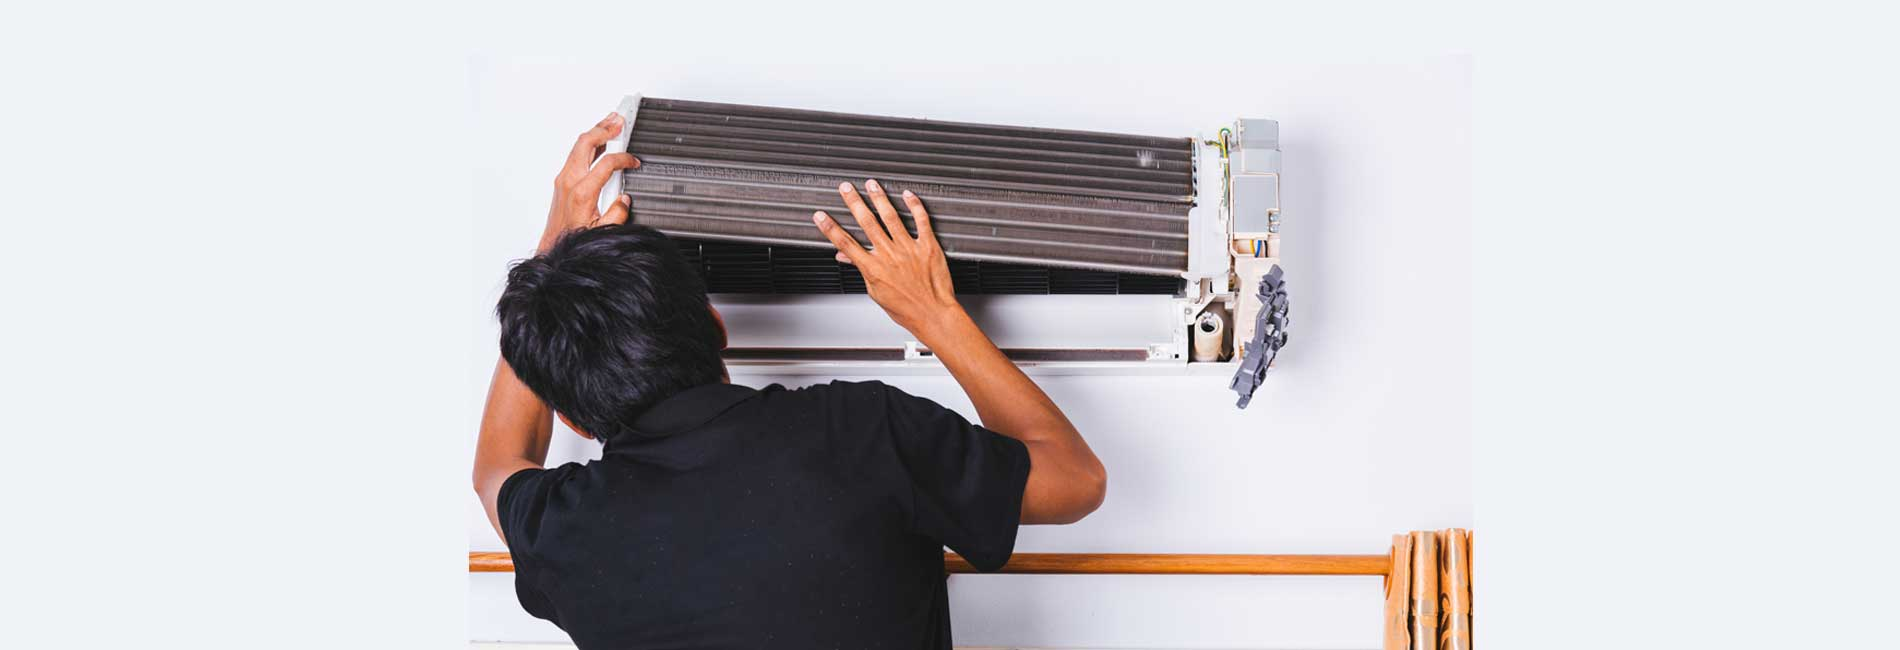 Panasonic AC Repair in Kovilambakkam